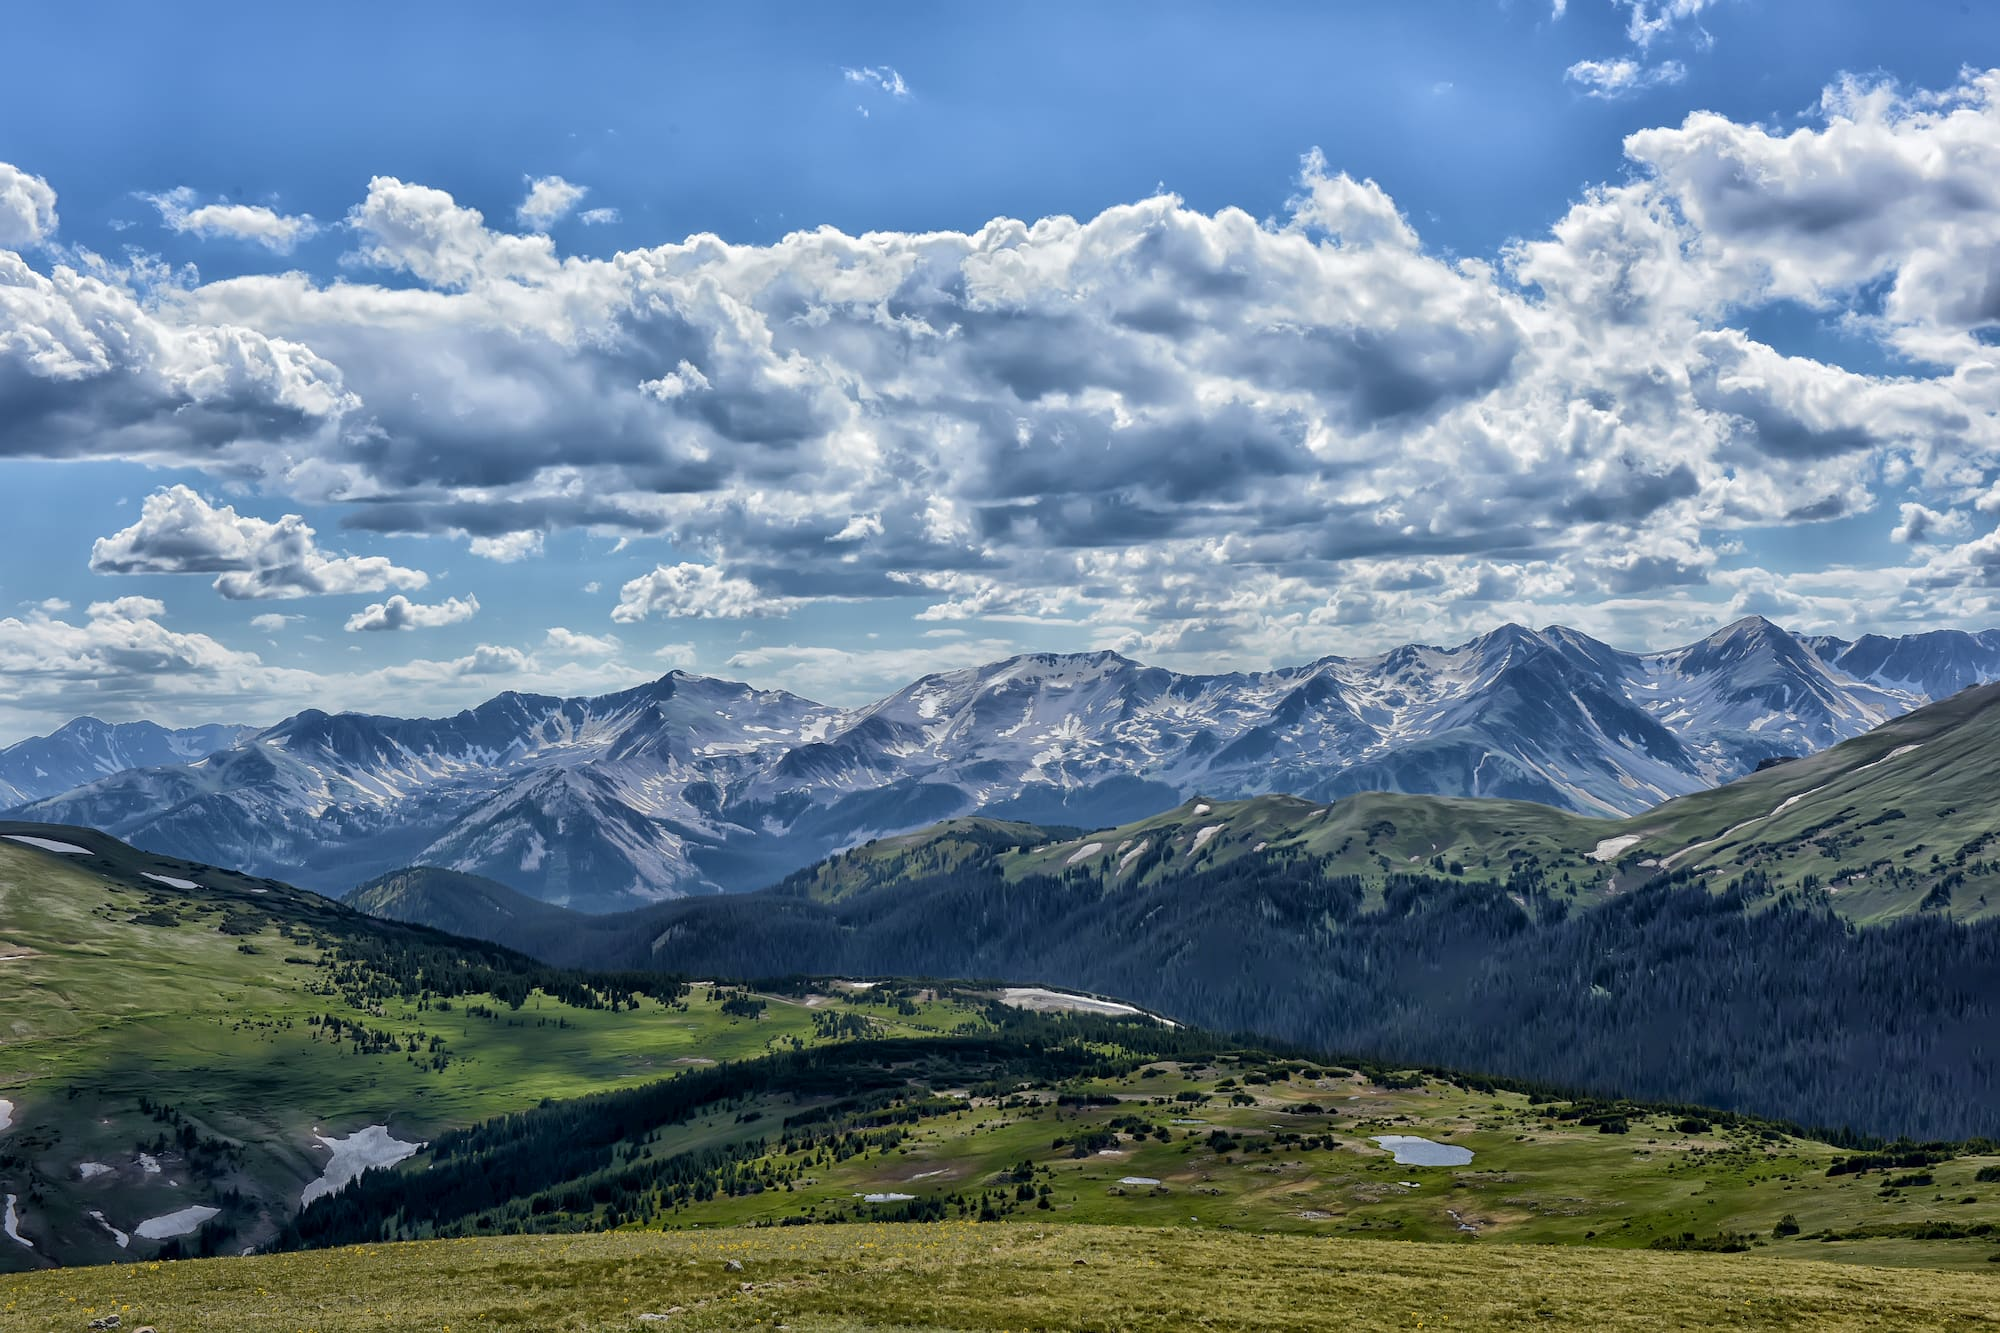 landscape shot of mountains and clouds